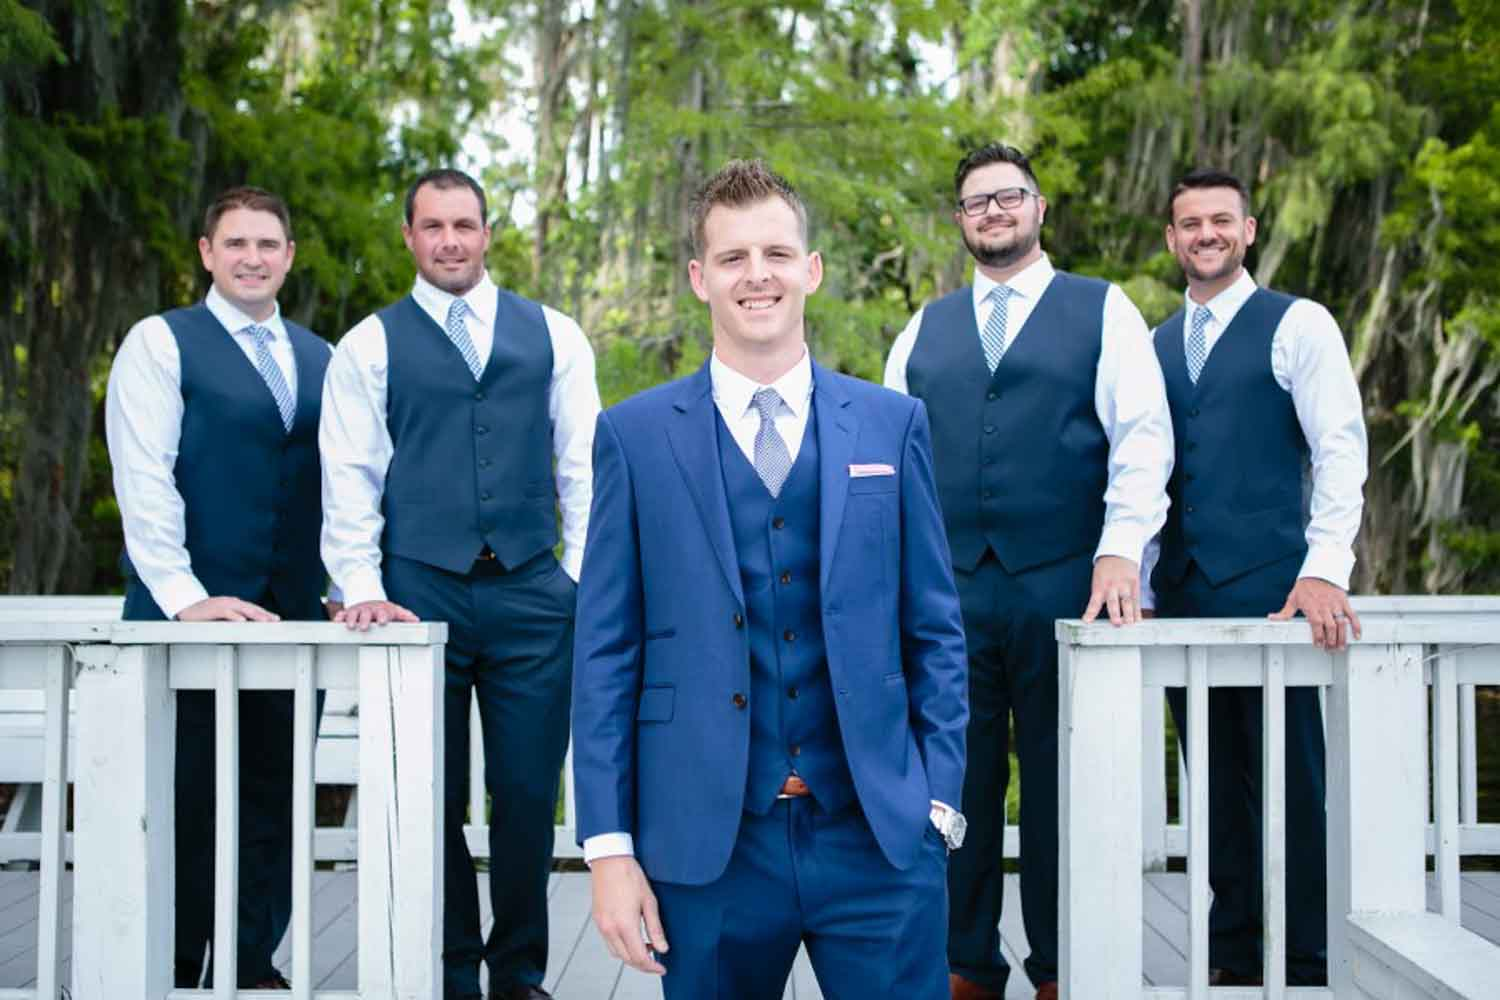 groom in blue suit with groomsmen in blue vests